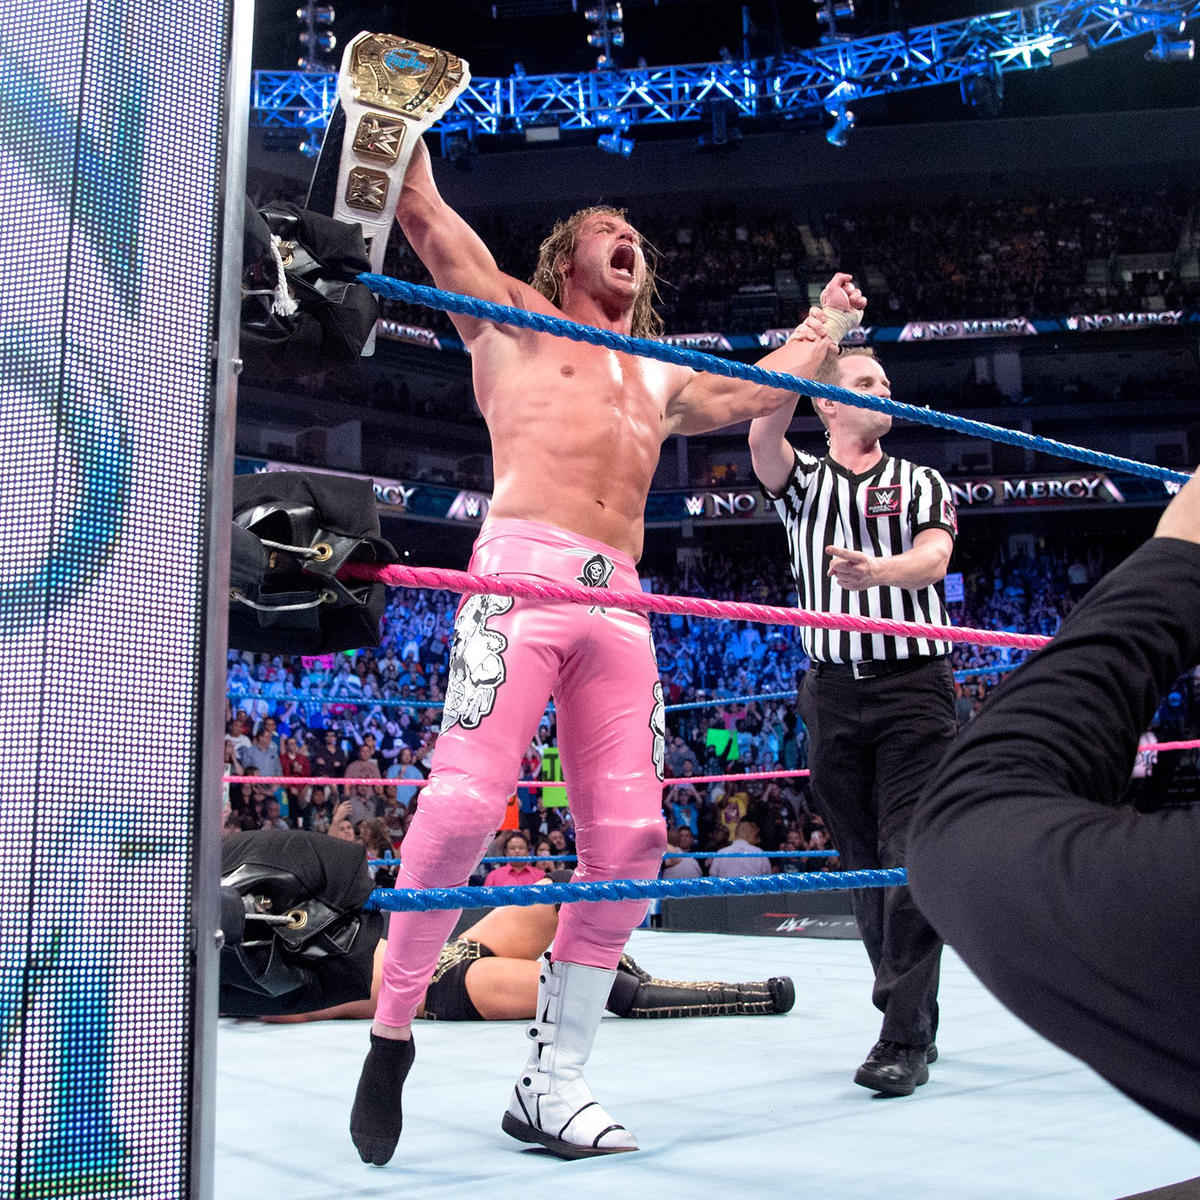 Dolph Ziggler wins Intercontinental Championship: No Mercy 2016